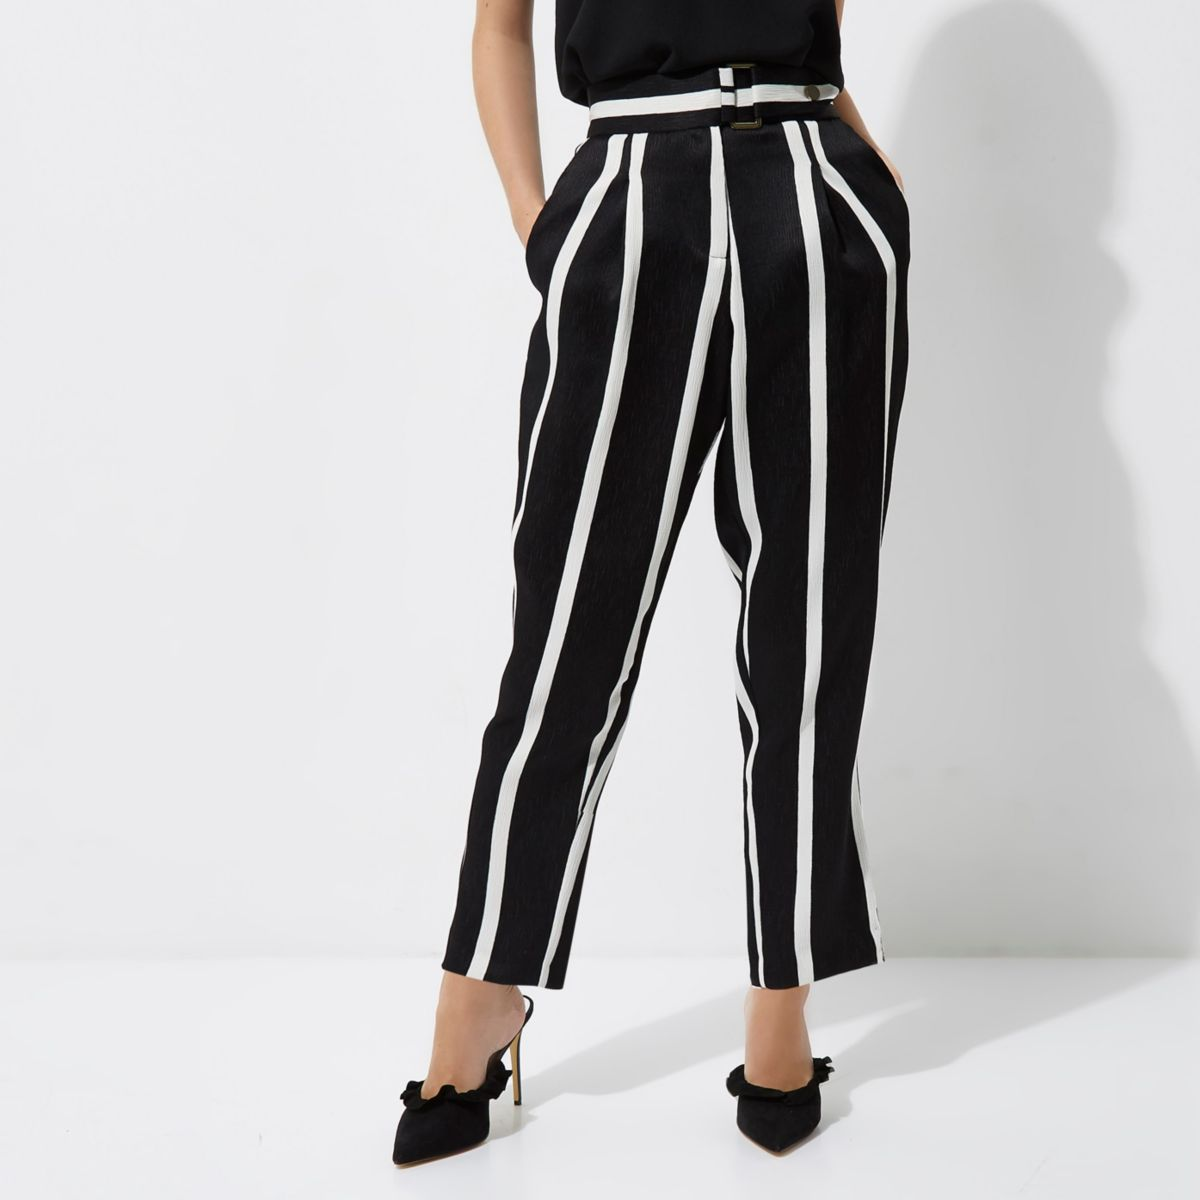 Get the easy, breezy look you love with Stein Mart's petite pants & leggings. Shop our palazzo pants, ankle pants & more to flawlessly fit your petite frame.